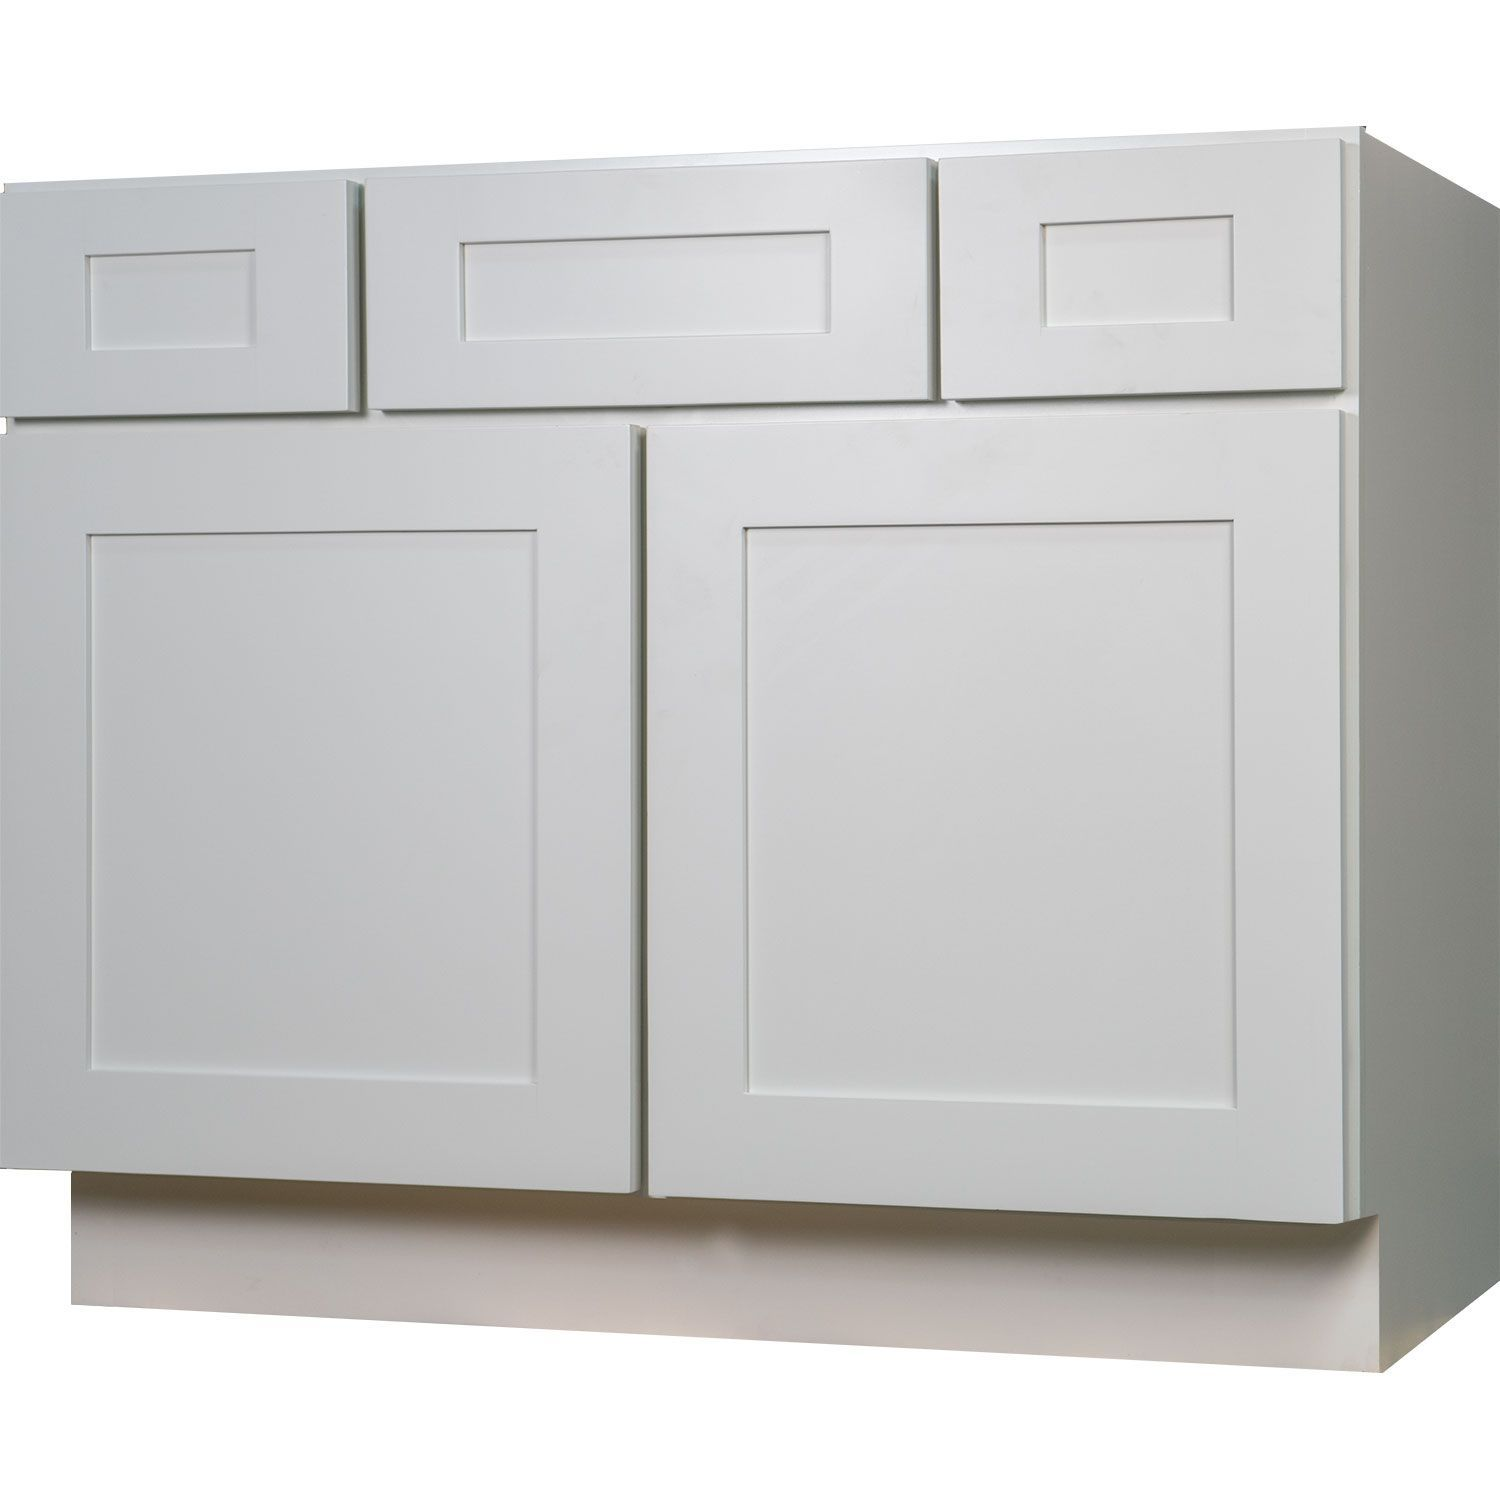 Bathroom Vanities Height 24 Inch Full Height Door Base Cabinet In Shaker Espresso With 2